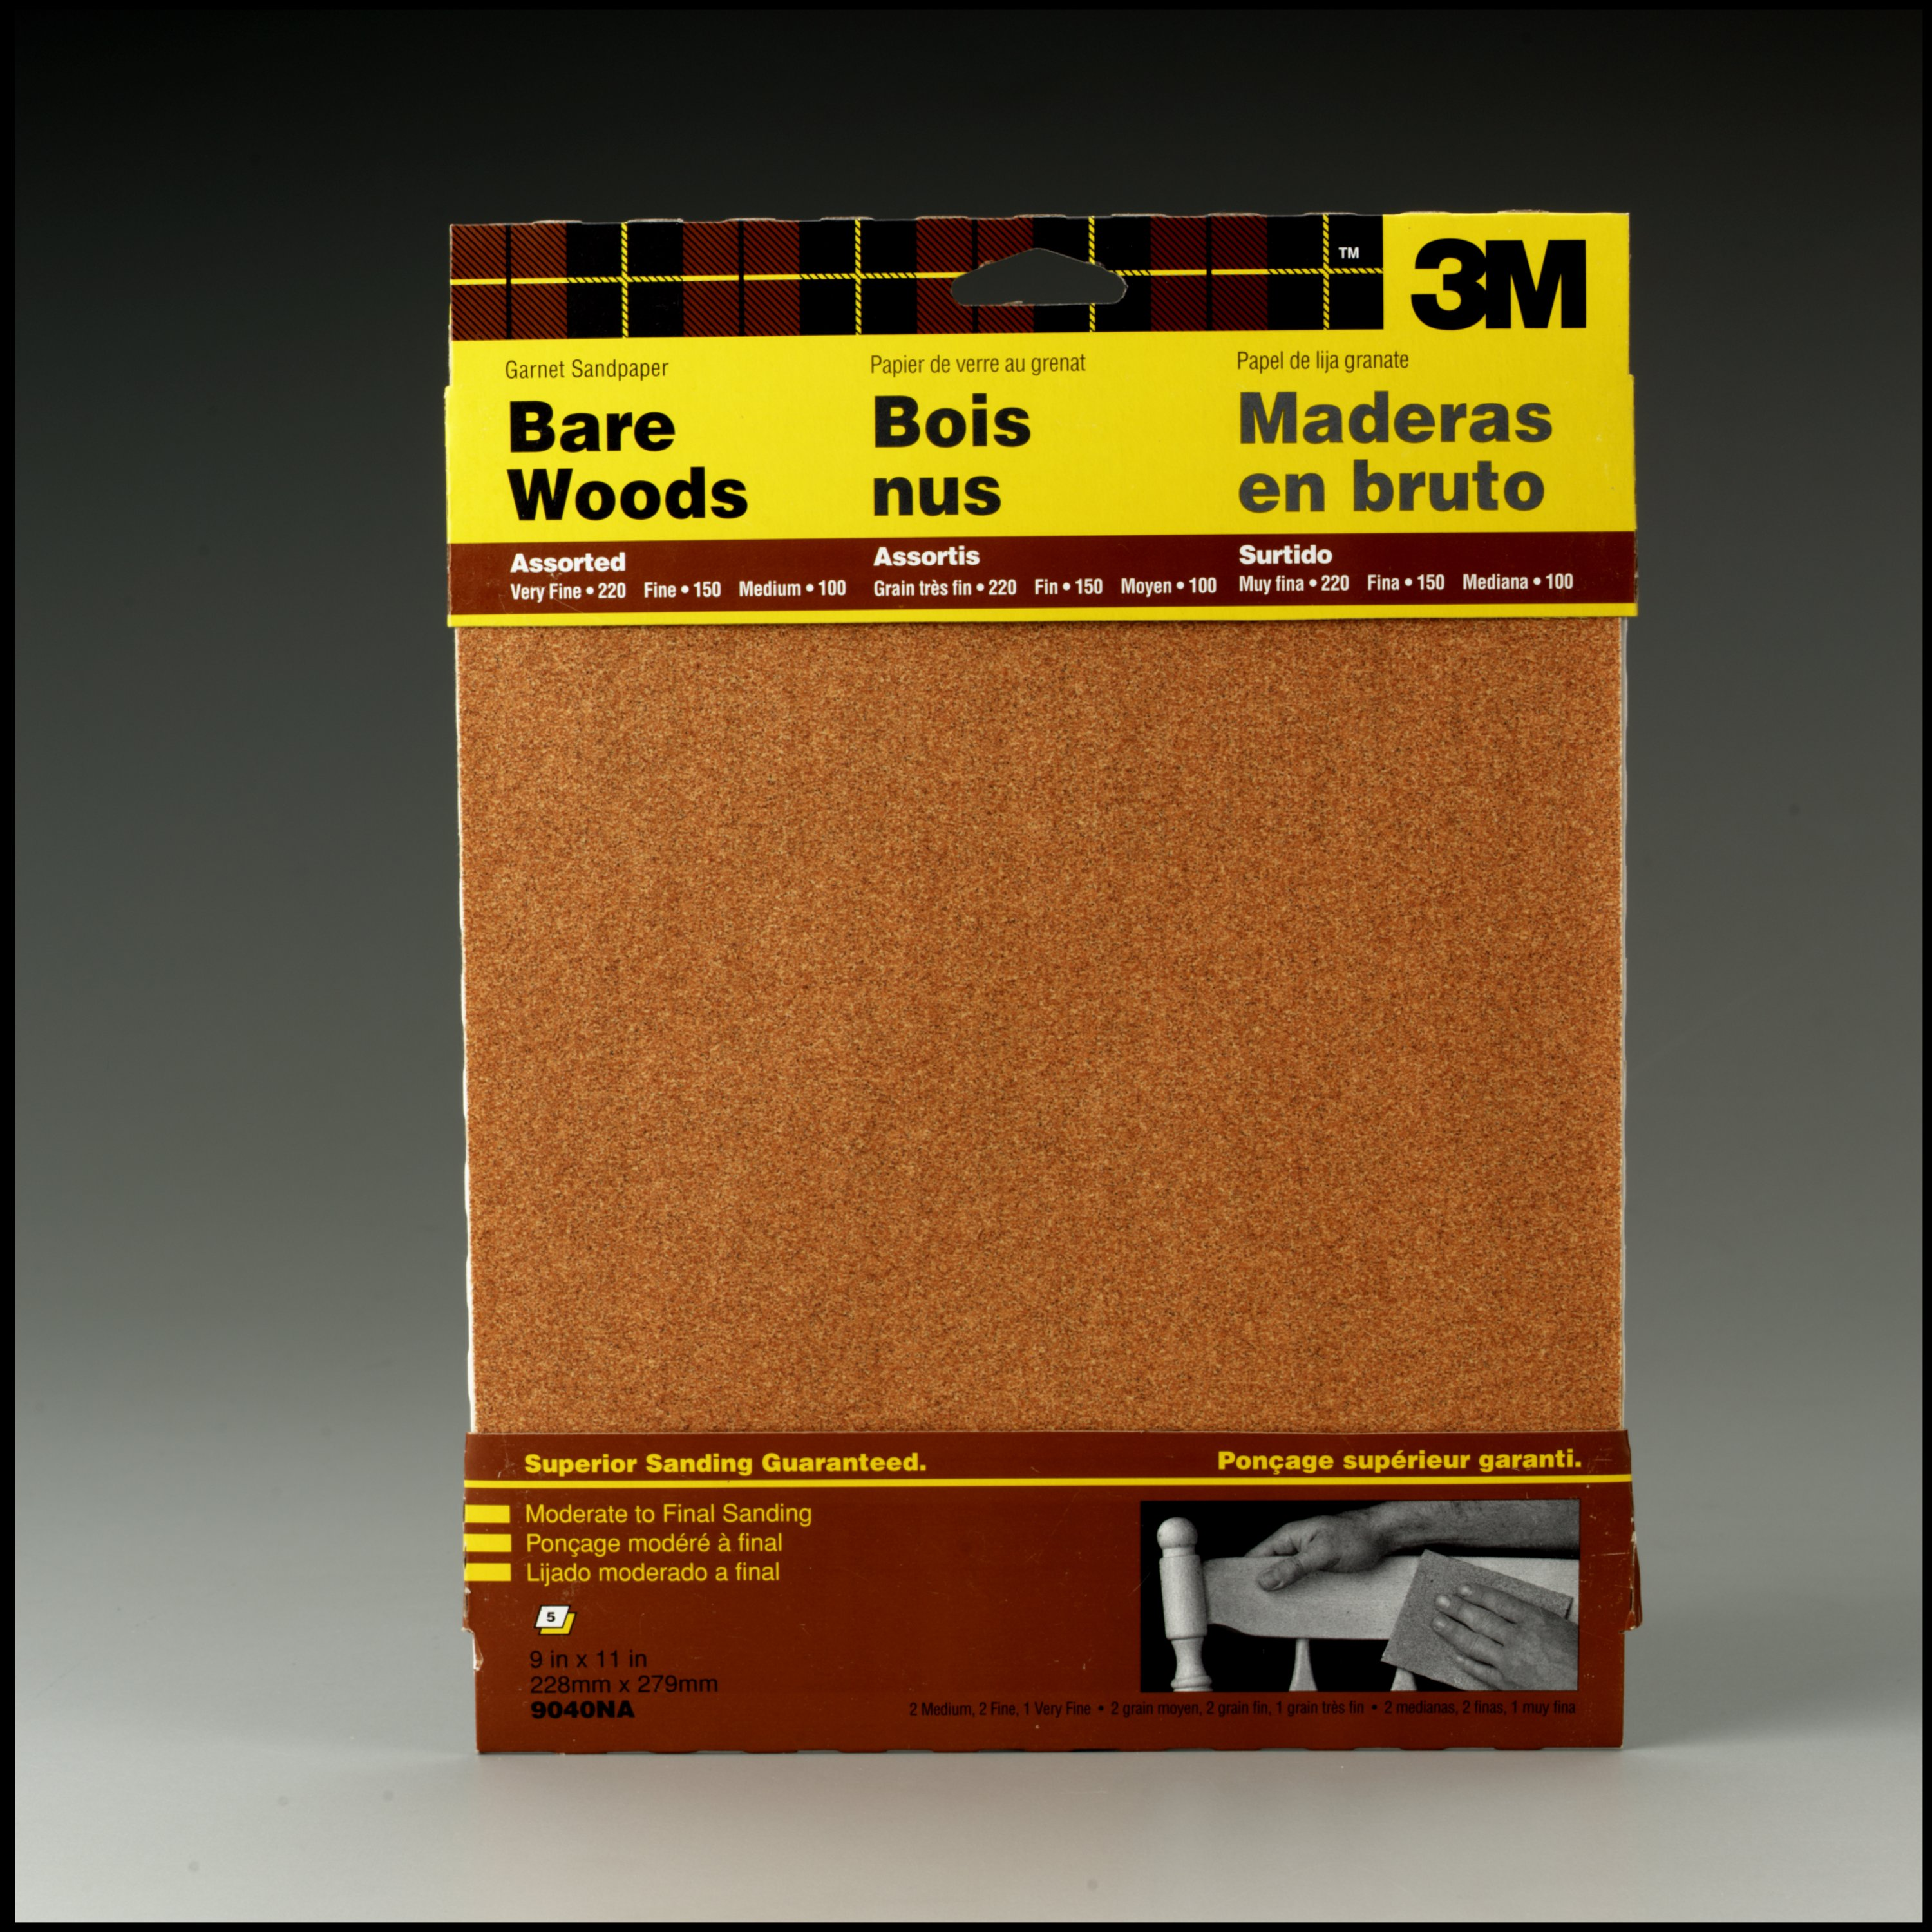 3M Garnet Sandpaper, 9 in. x 11 in., Assorted Grits, 5 Pack by 3M COMPANY